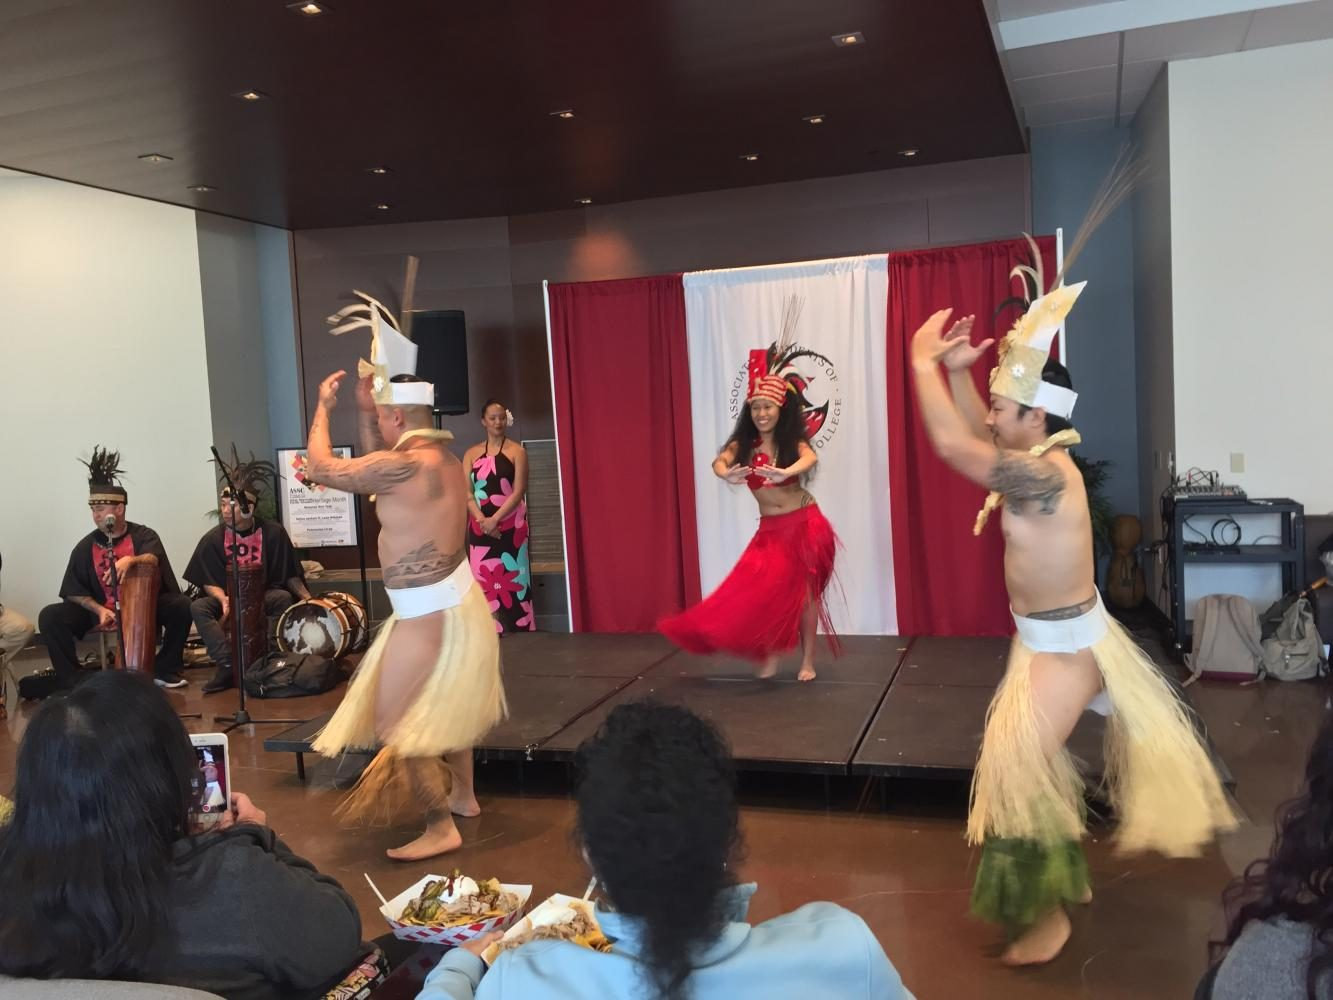 Performers+dancing+at+fireside+dining+during+Polynesian+Lu%27au+on+April+26%2C+2017+Photo+credit%3A+Mintzhet+Tan